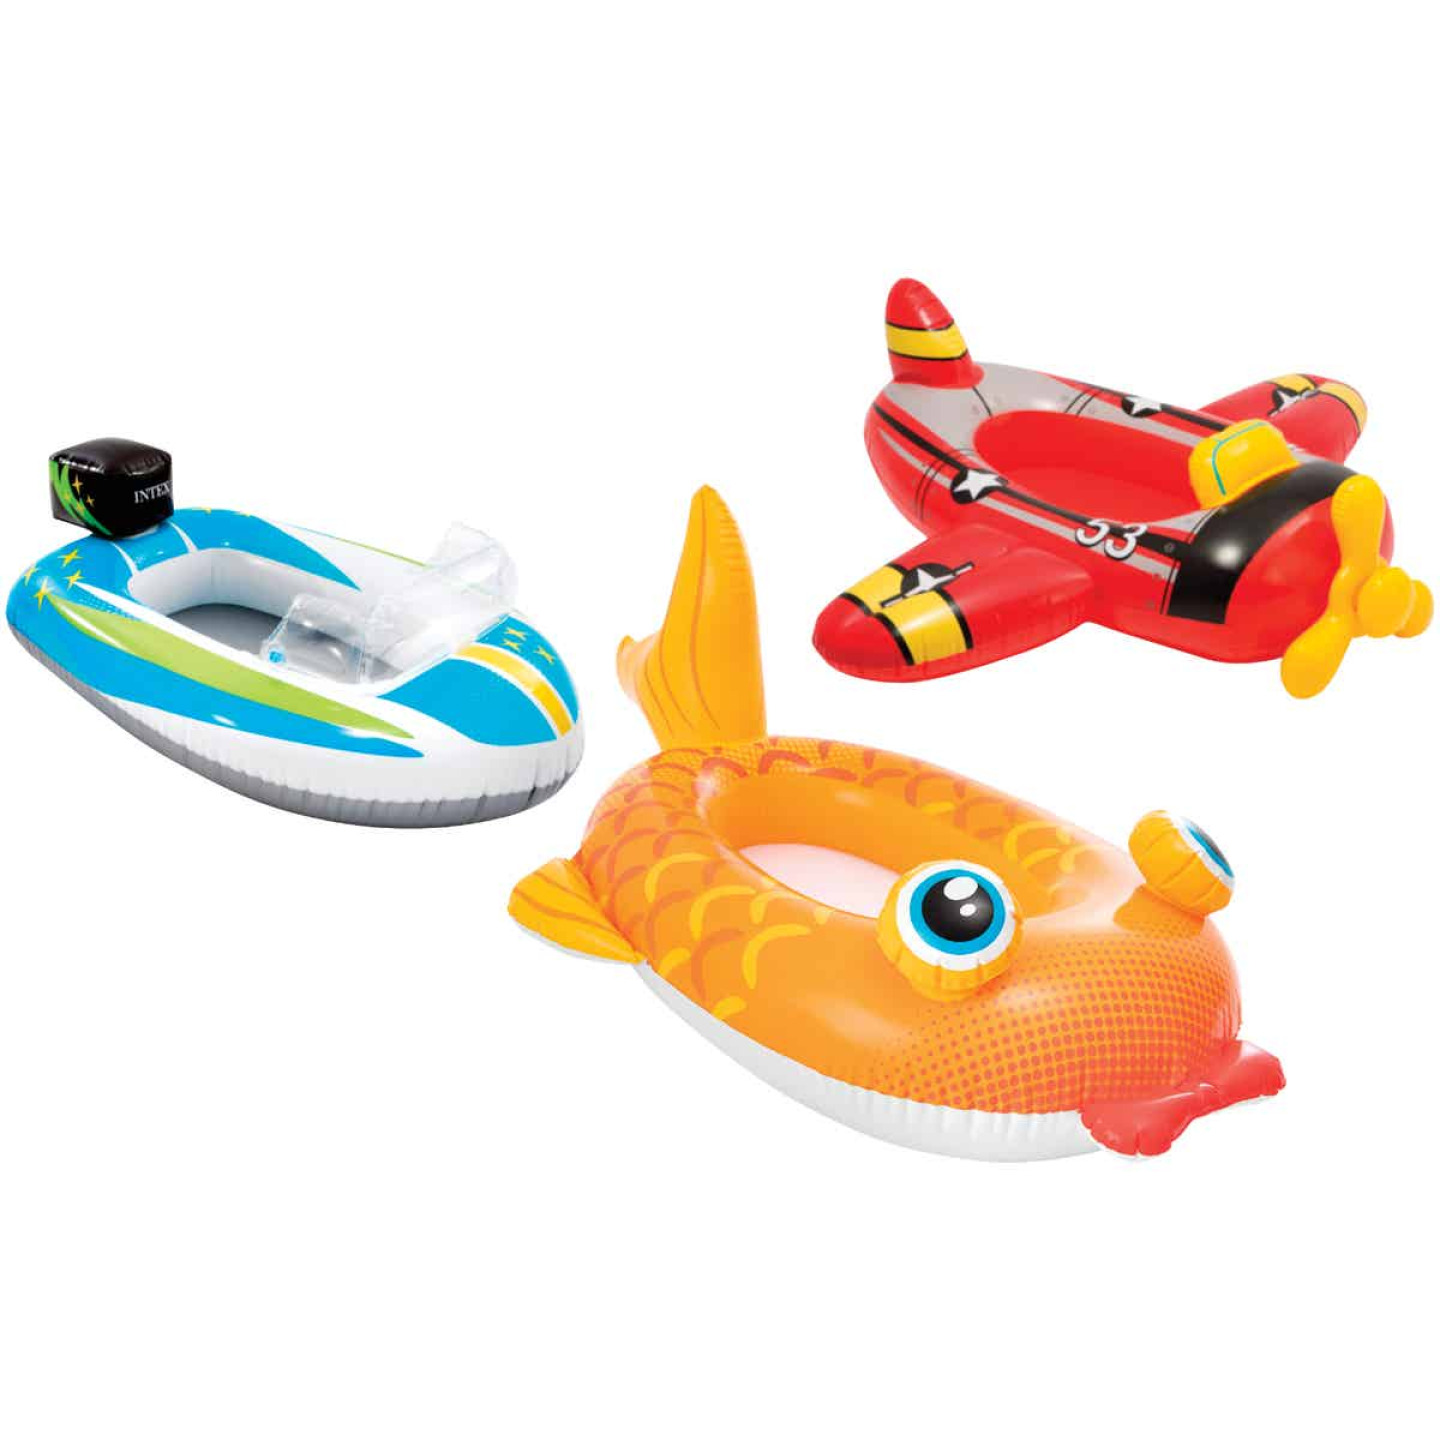 Intex Pool Cruiser Ride-On Pool Float Image 1